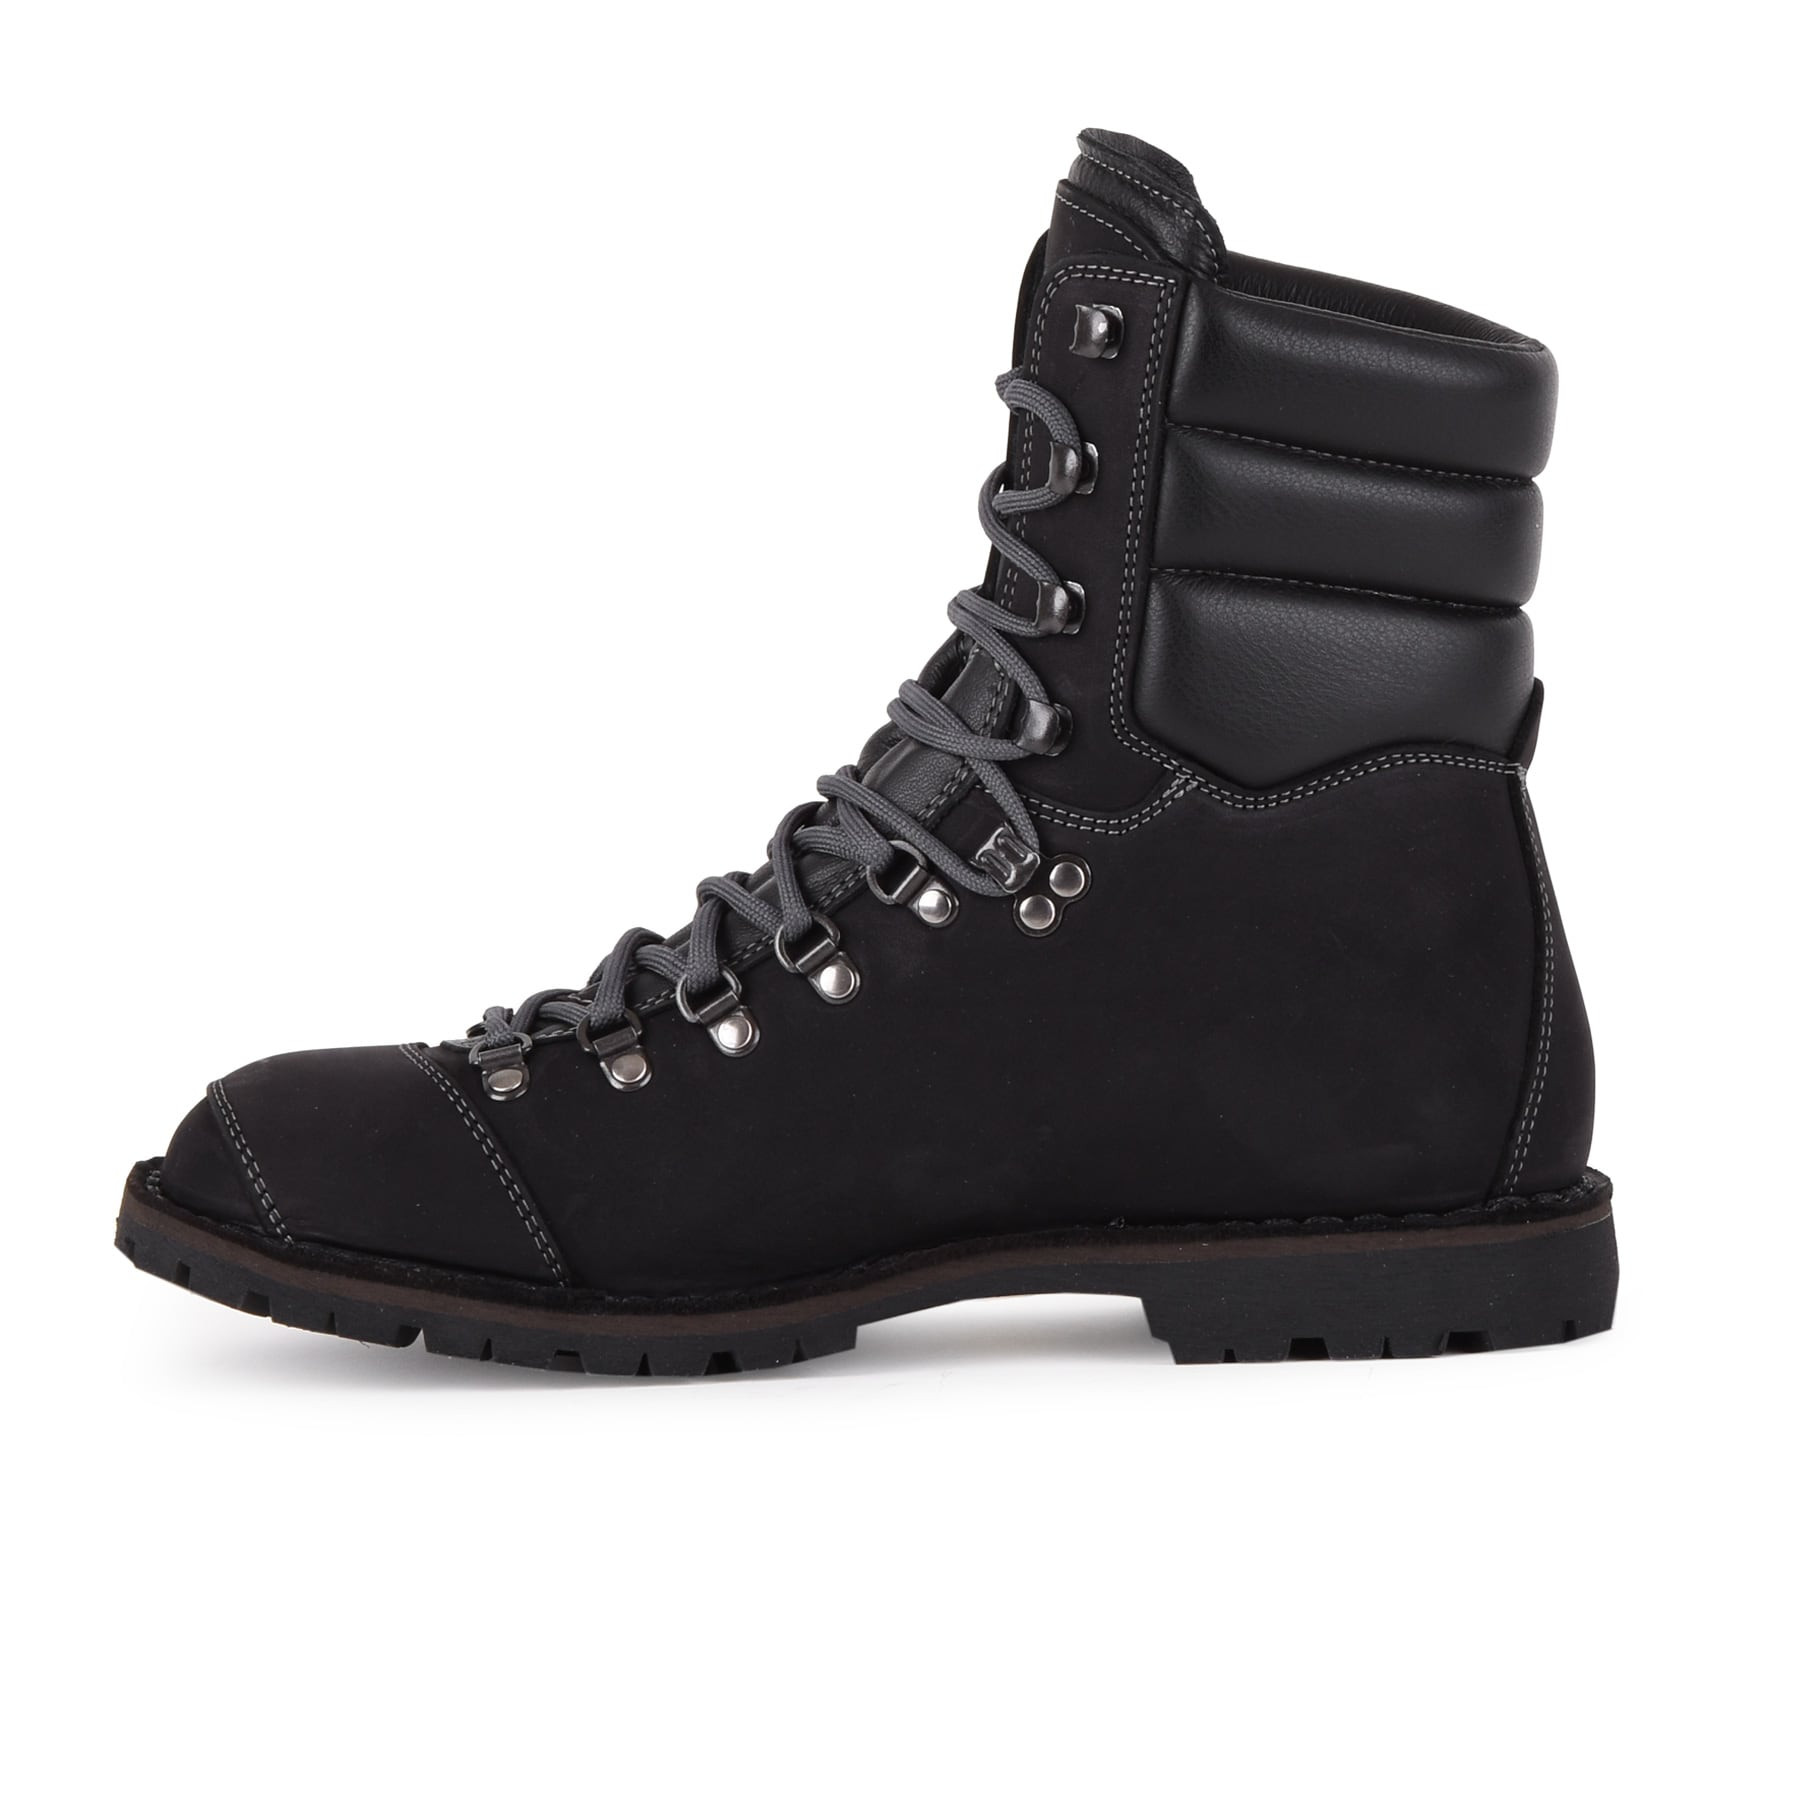 Biker Boot AdventureSE Denver Black, zwarte dames boot, grijs stiksel